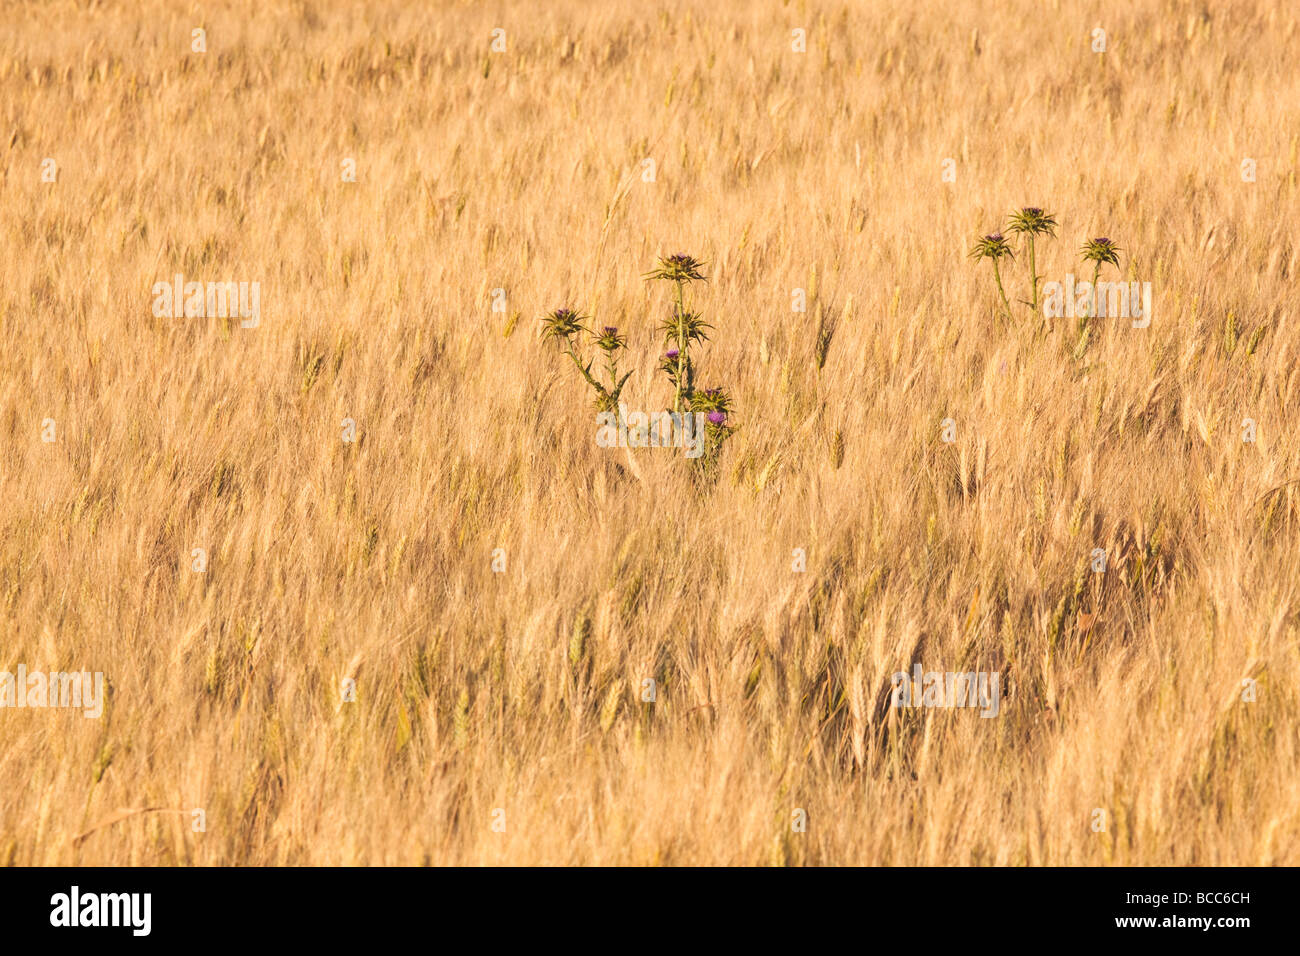 Thistles growing amongst field of wheat - Stock Image